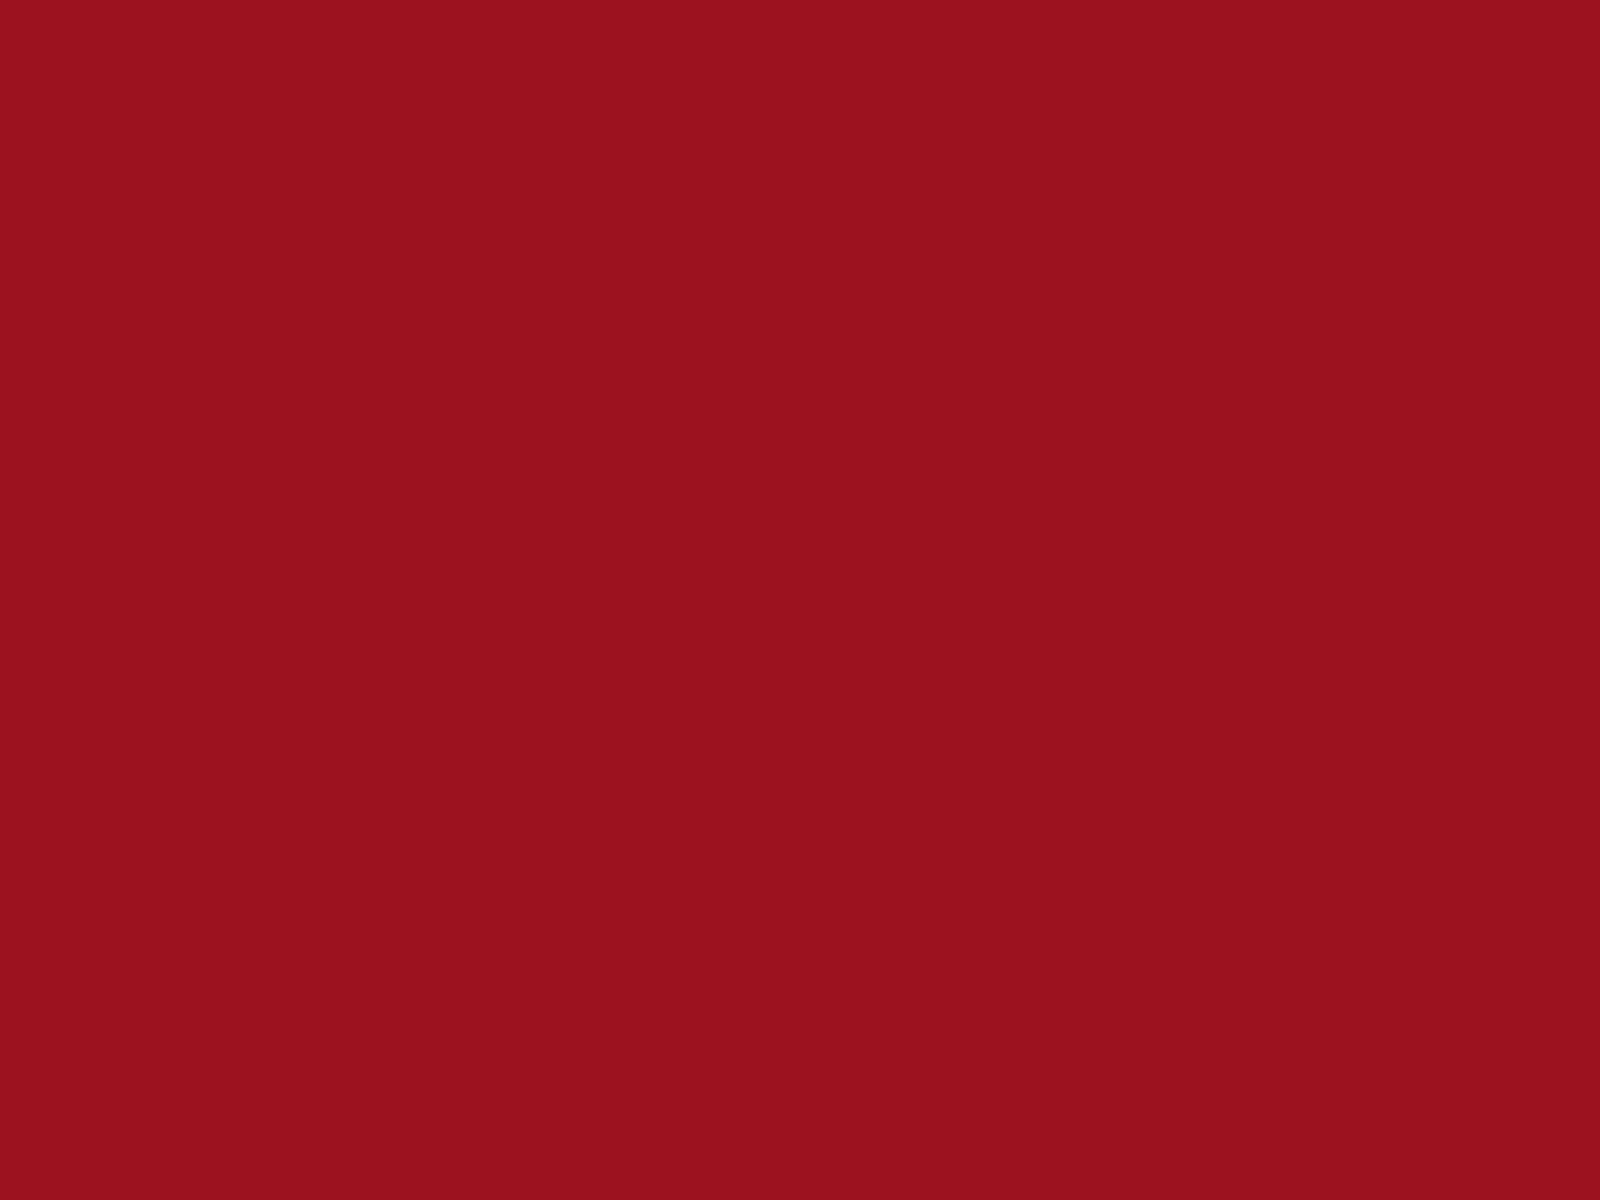 1600x1200 Ruby Red Solid Color Background